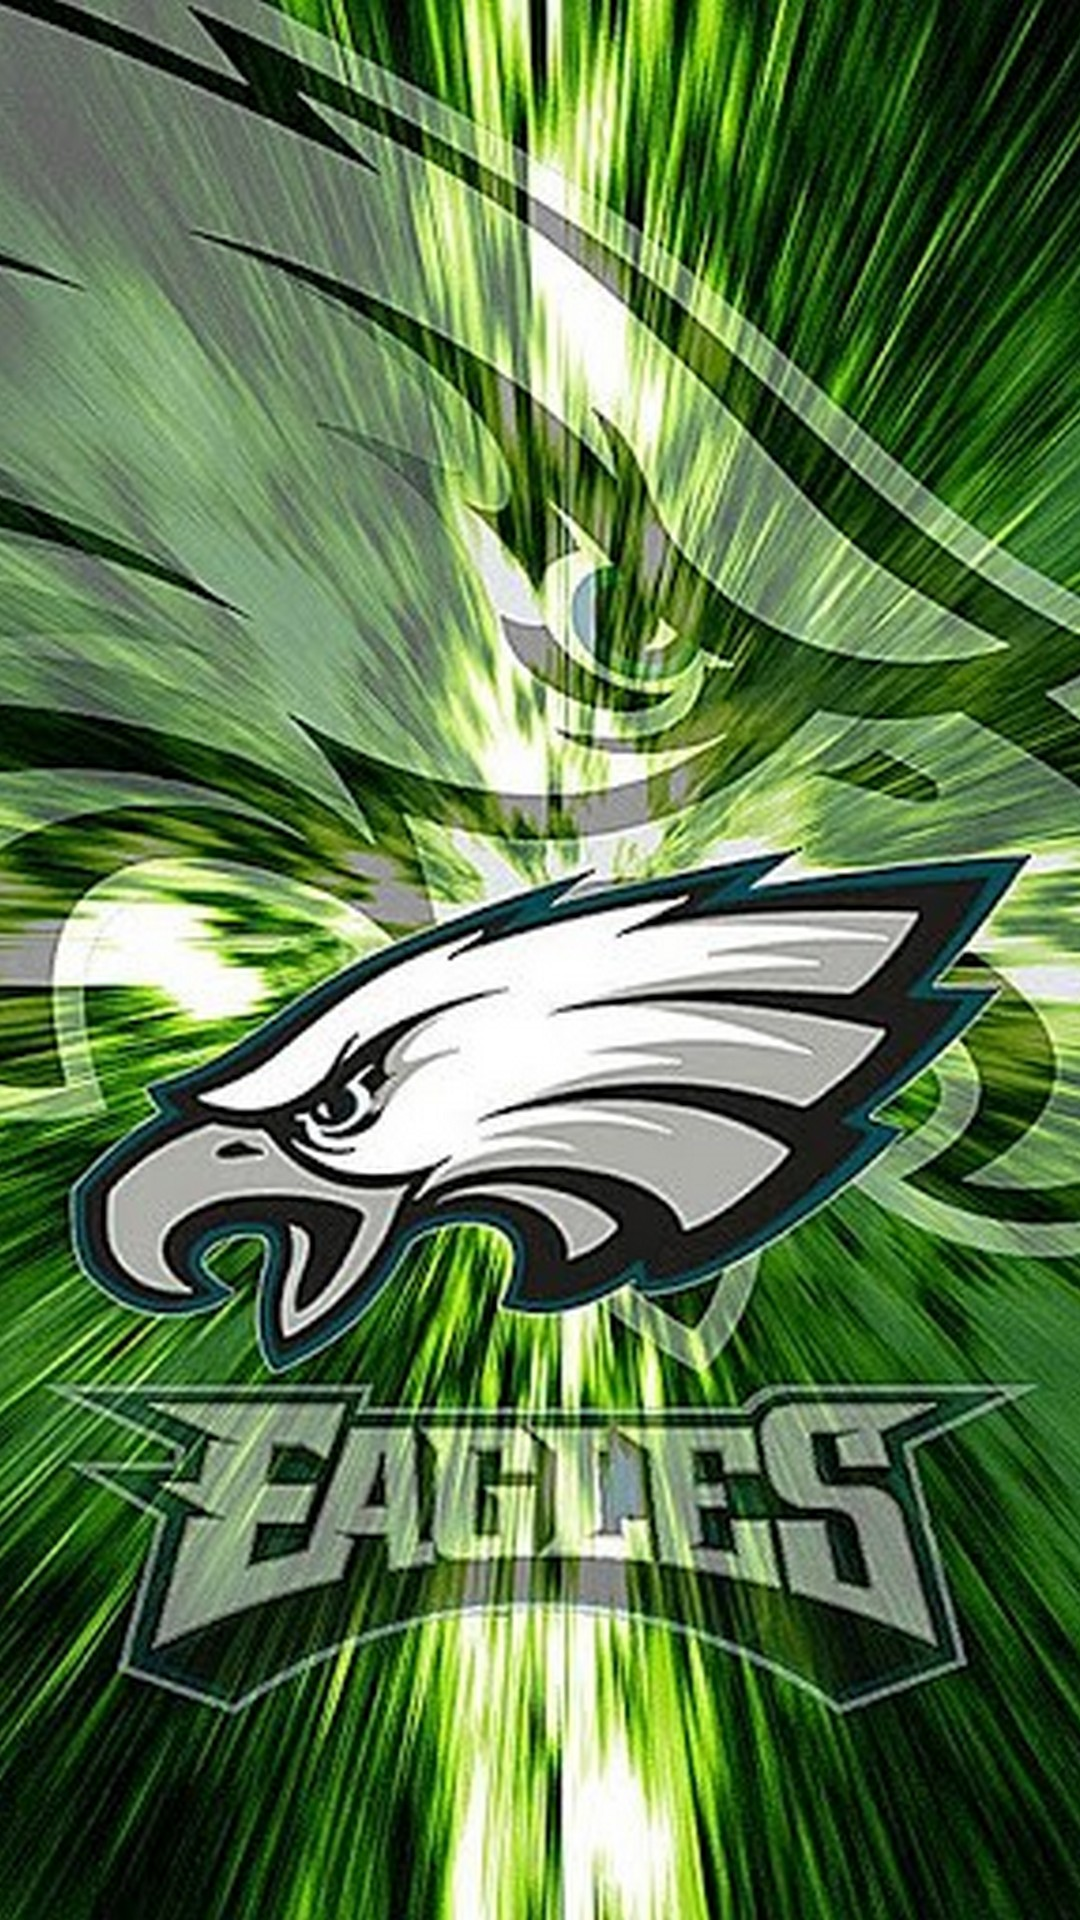 Philadelphia Eagles iPhone 8 Wallpaper with resolution 1080x1920 pixel. You can make this wallpaper for your Mac or Windows Desktop Background, iPhone, Android or Tablet and another Smartphone device